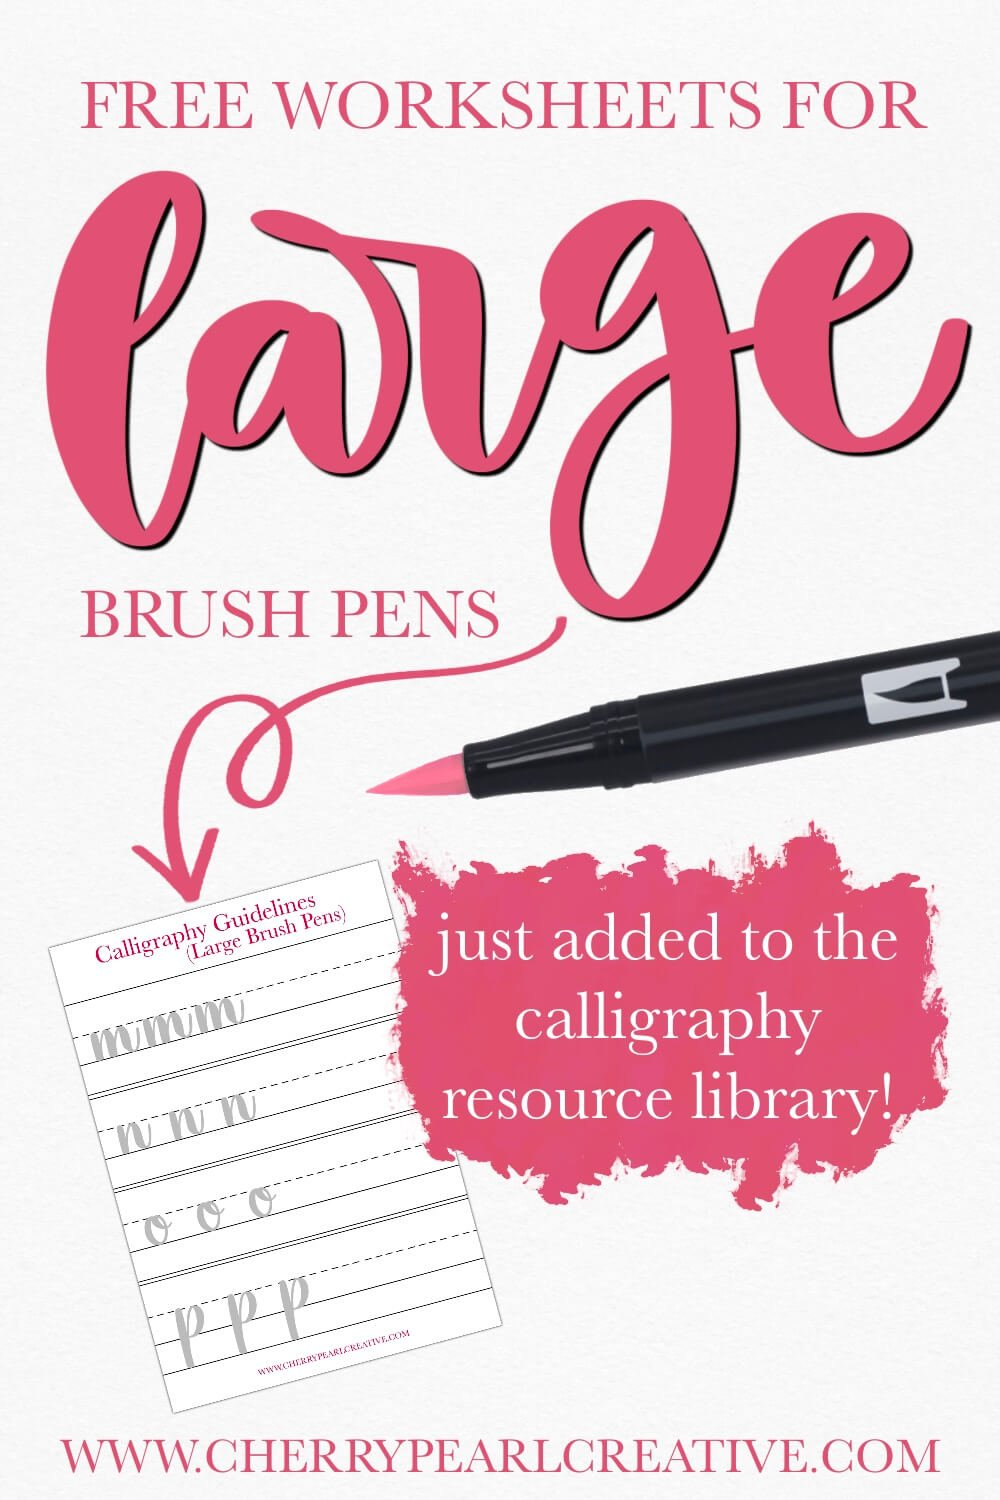 Large Brush Pens - Free Worksheets for calligraphy or lettering